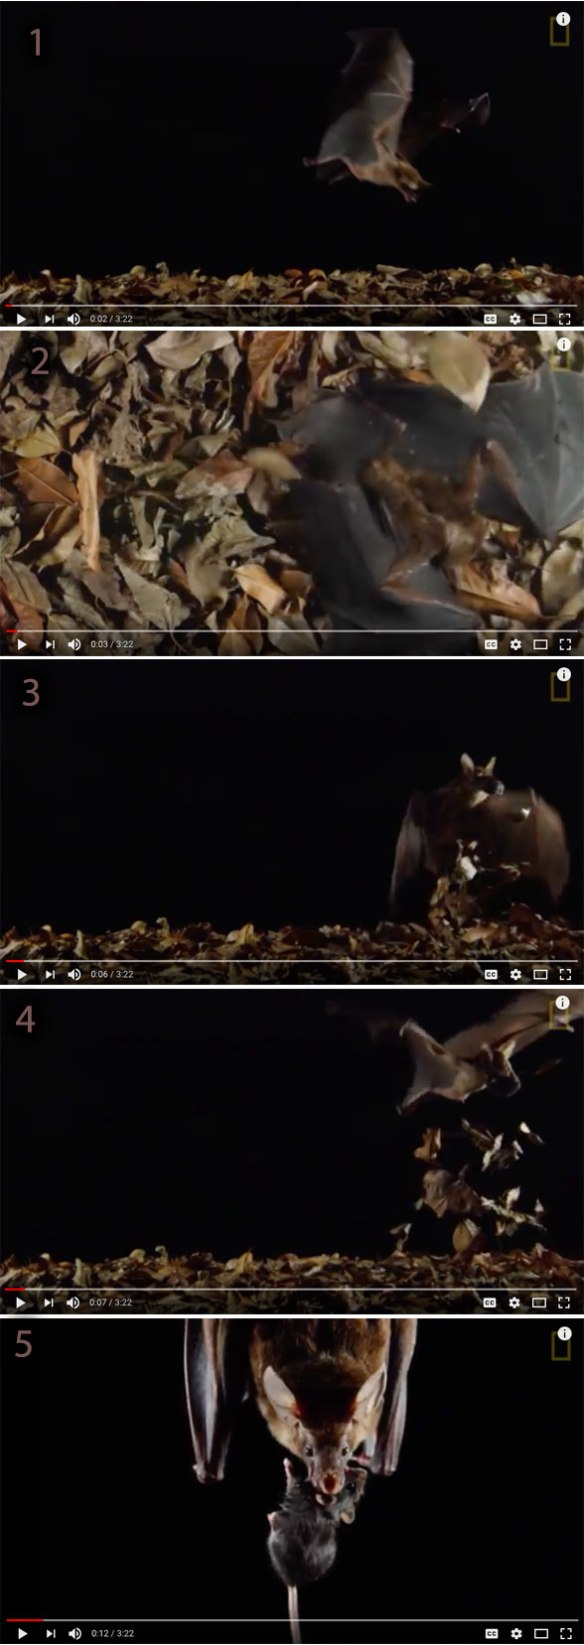 Figure 2. Scenes from the video showing the stages in the bat attack on the mouse in the leaf litter.